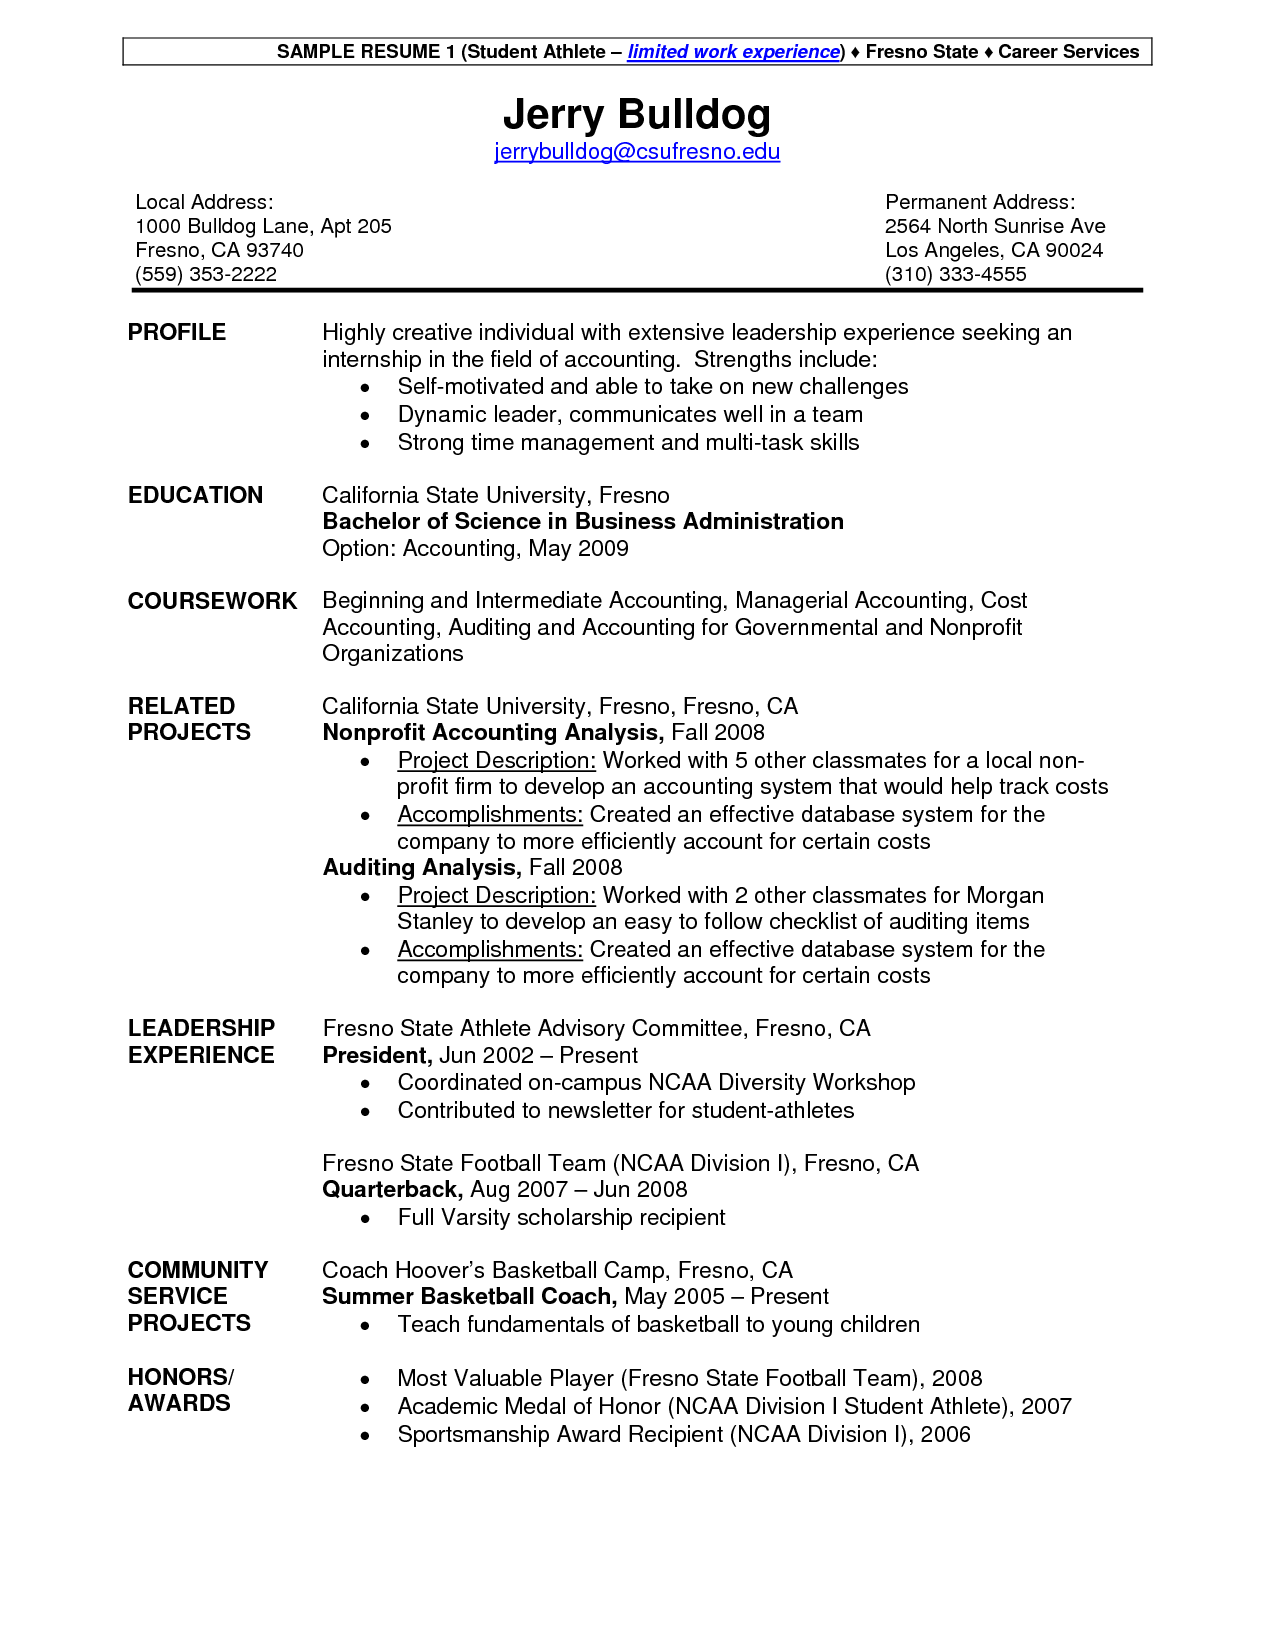 Resumes Templates Free Sports Resume Template Templates And Builder Athletic Training